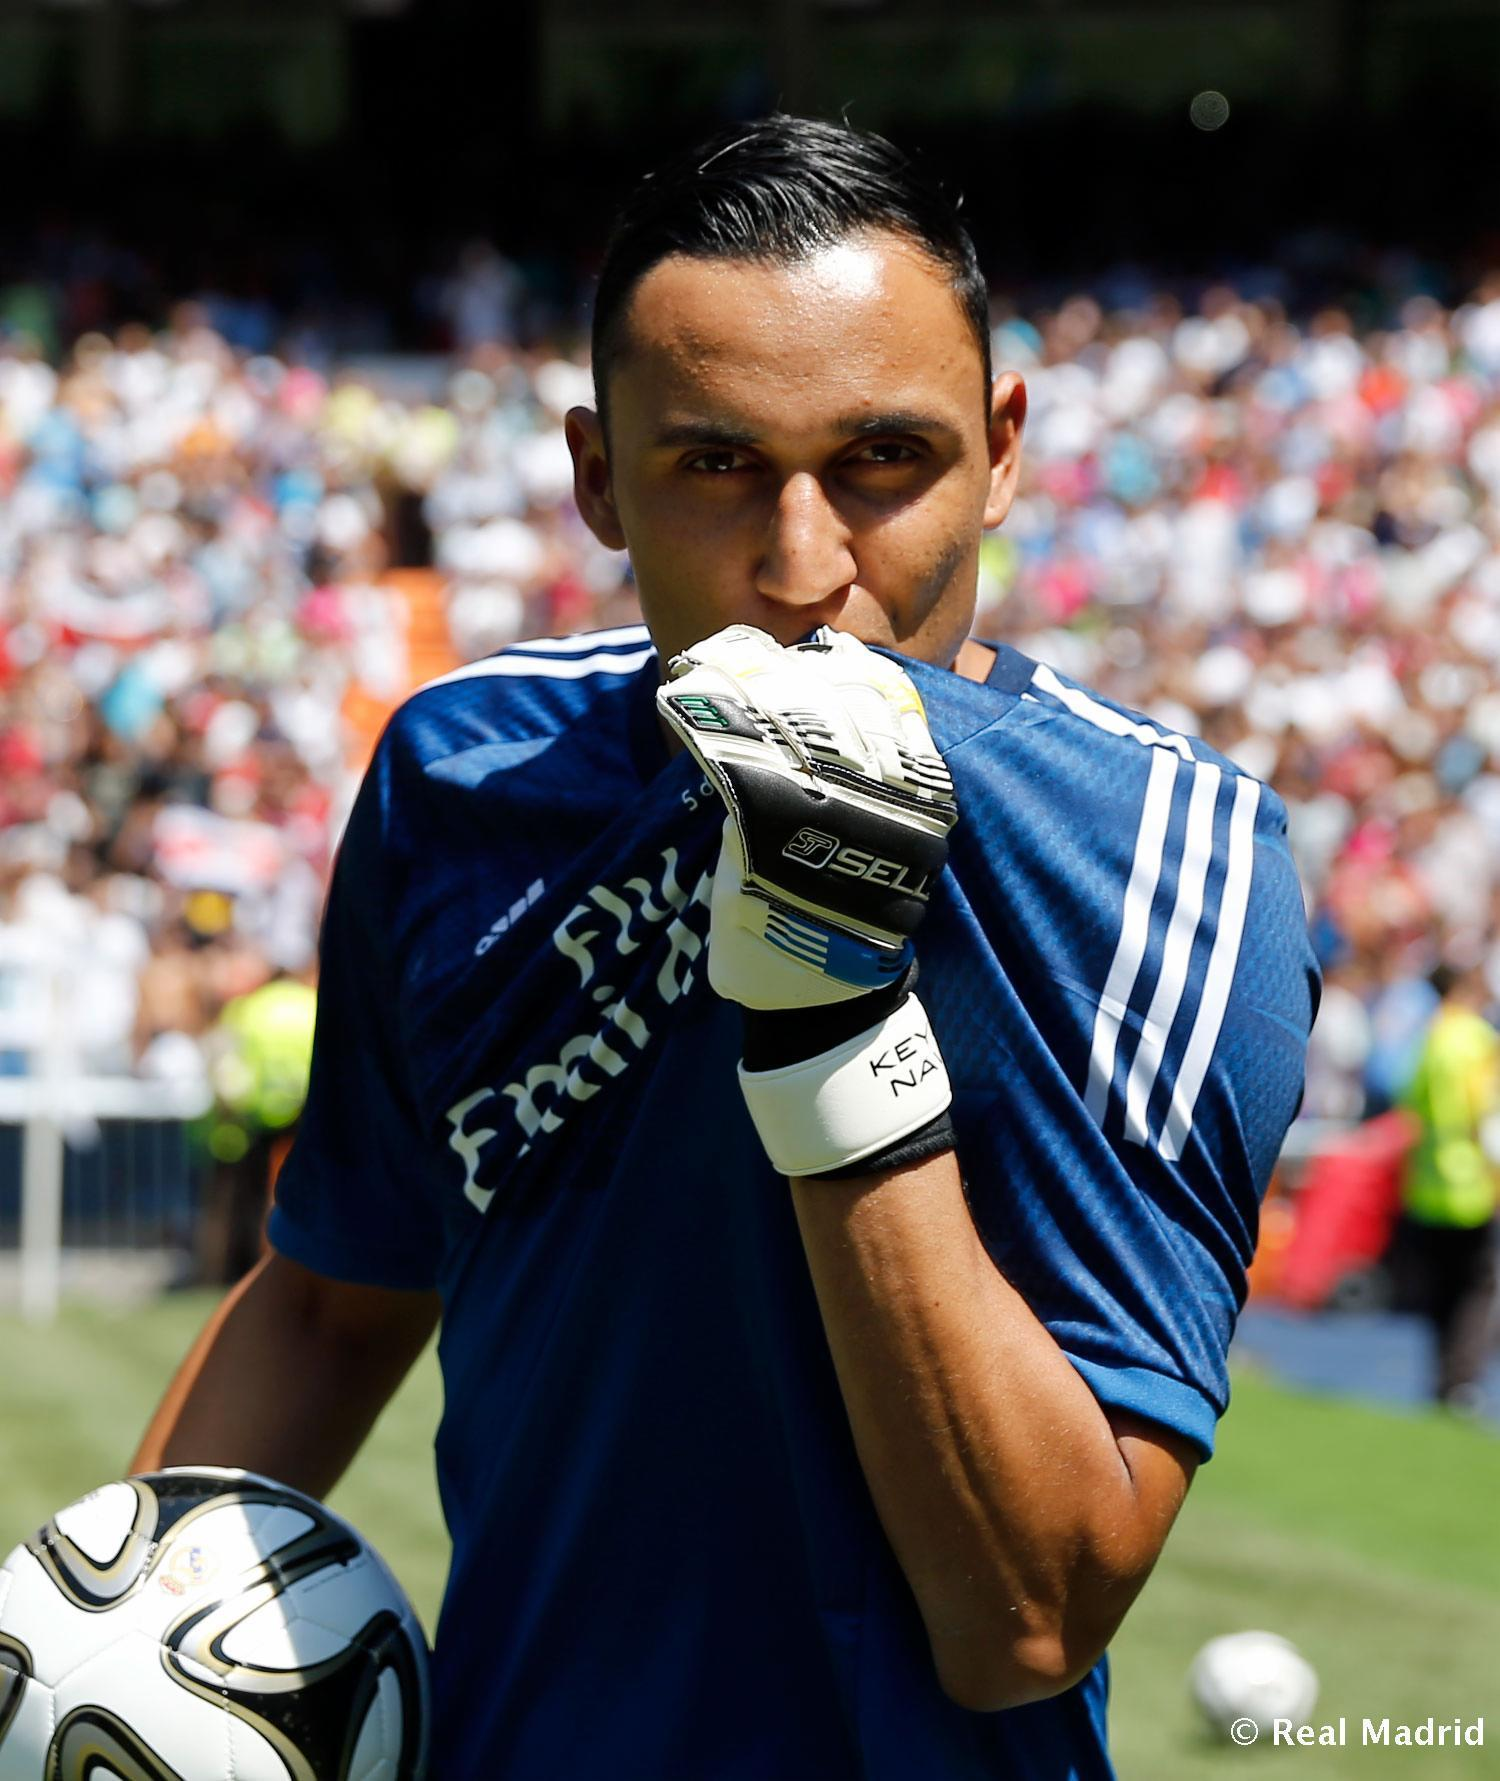 Liverpool Fc Beaten 3 0 By Real Madrid At Anfield: Real Madrid Navas Keylor Keylor Navas Wallpapers Wallpaper